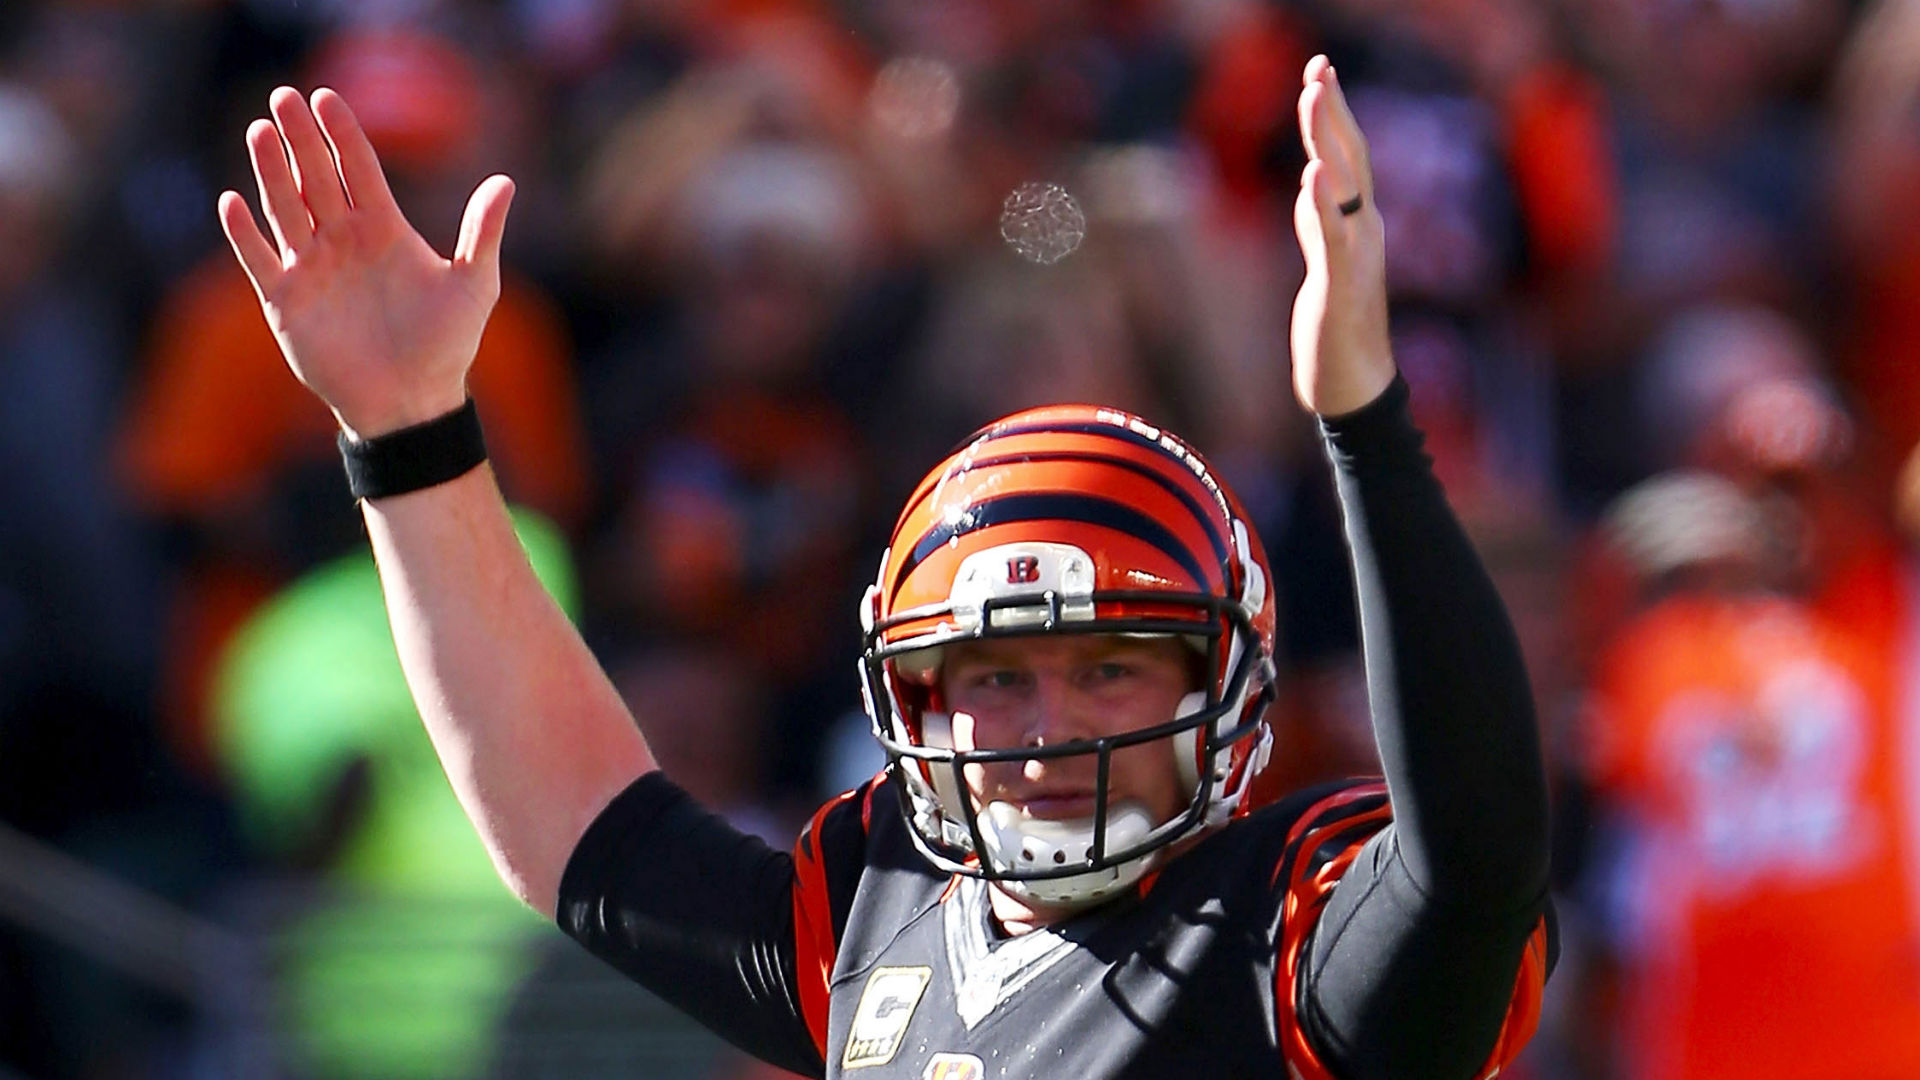 Thursday night action report – All Bengals money so far